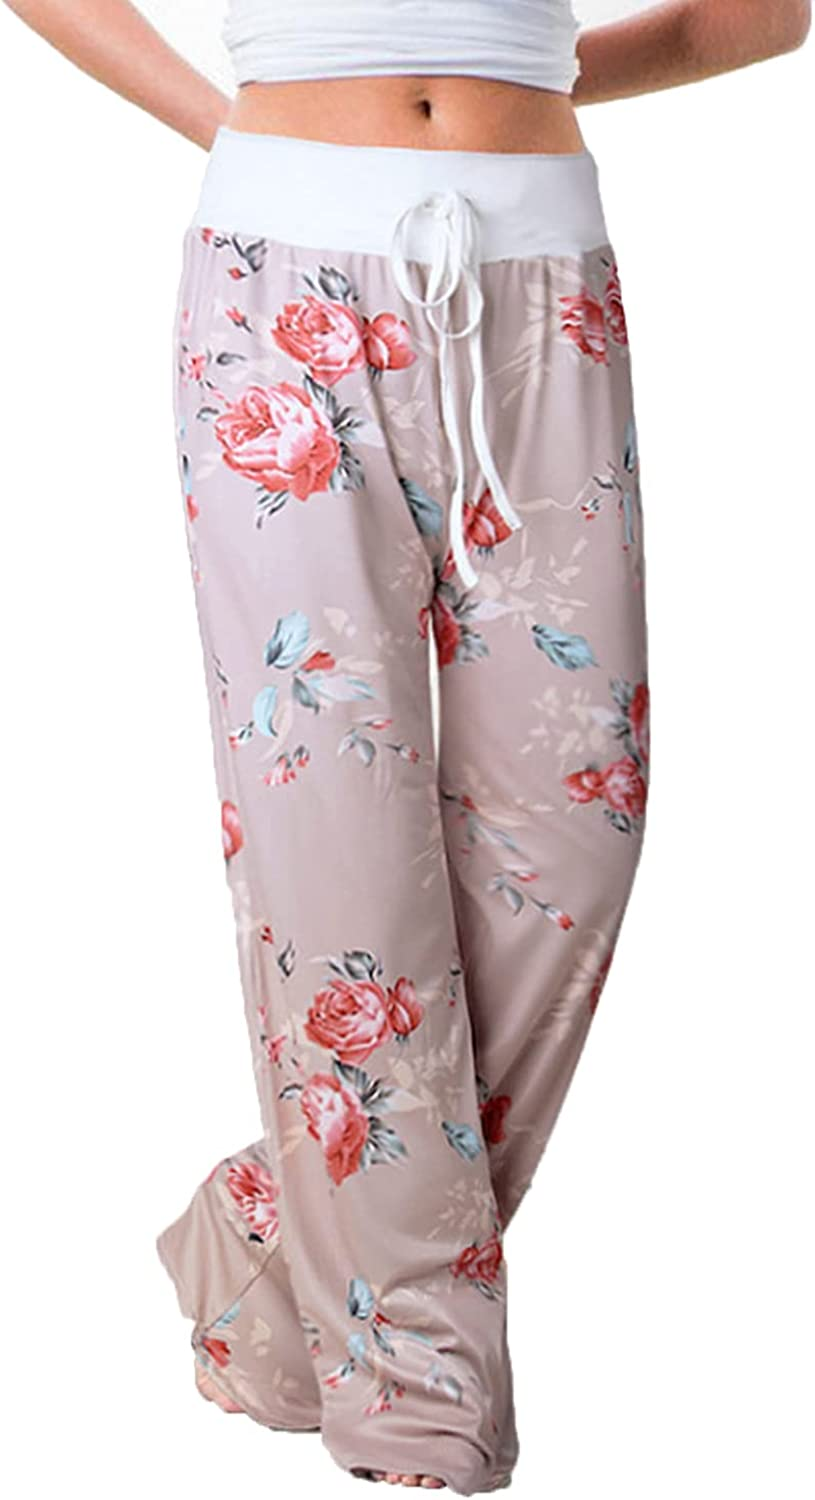 Women's Printed Wide-Leg Pants Comfy Stretch Floral Print Drawstring Lounge Trousers Casual Stretchy Casualpants (Large,Pink 1)